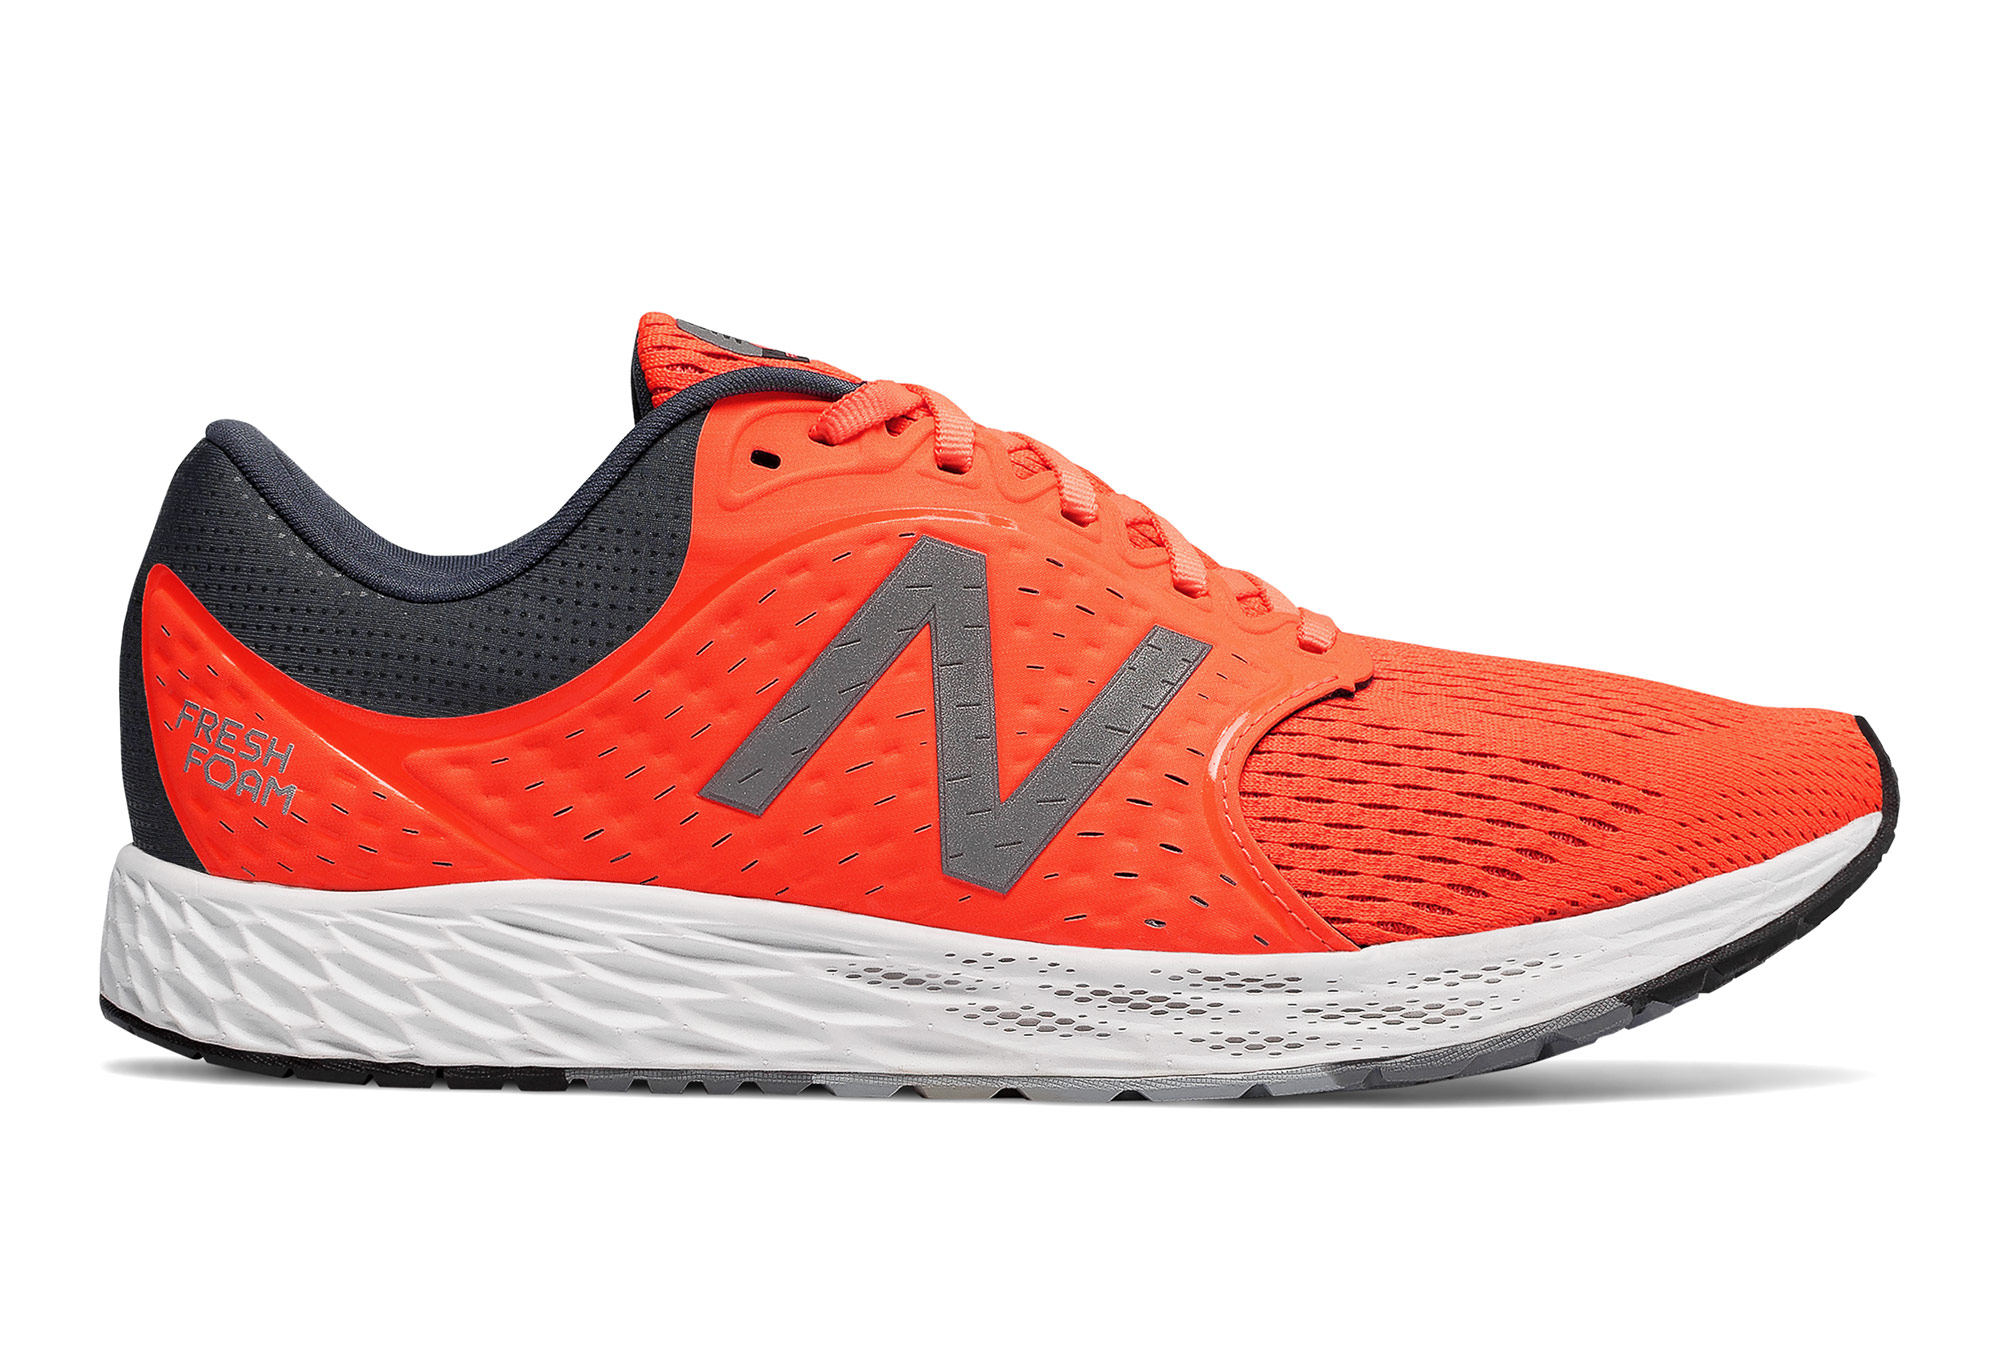 Running New De Foam Orange Zante V4 Balance Fresh Chaussures x1vEqFw1